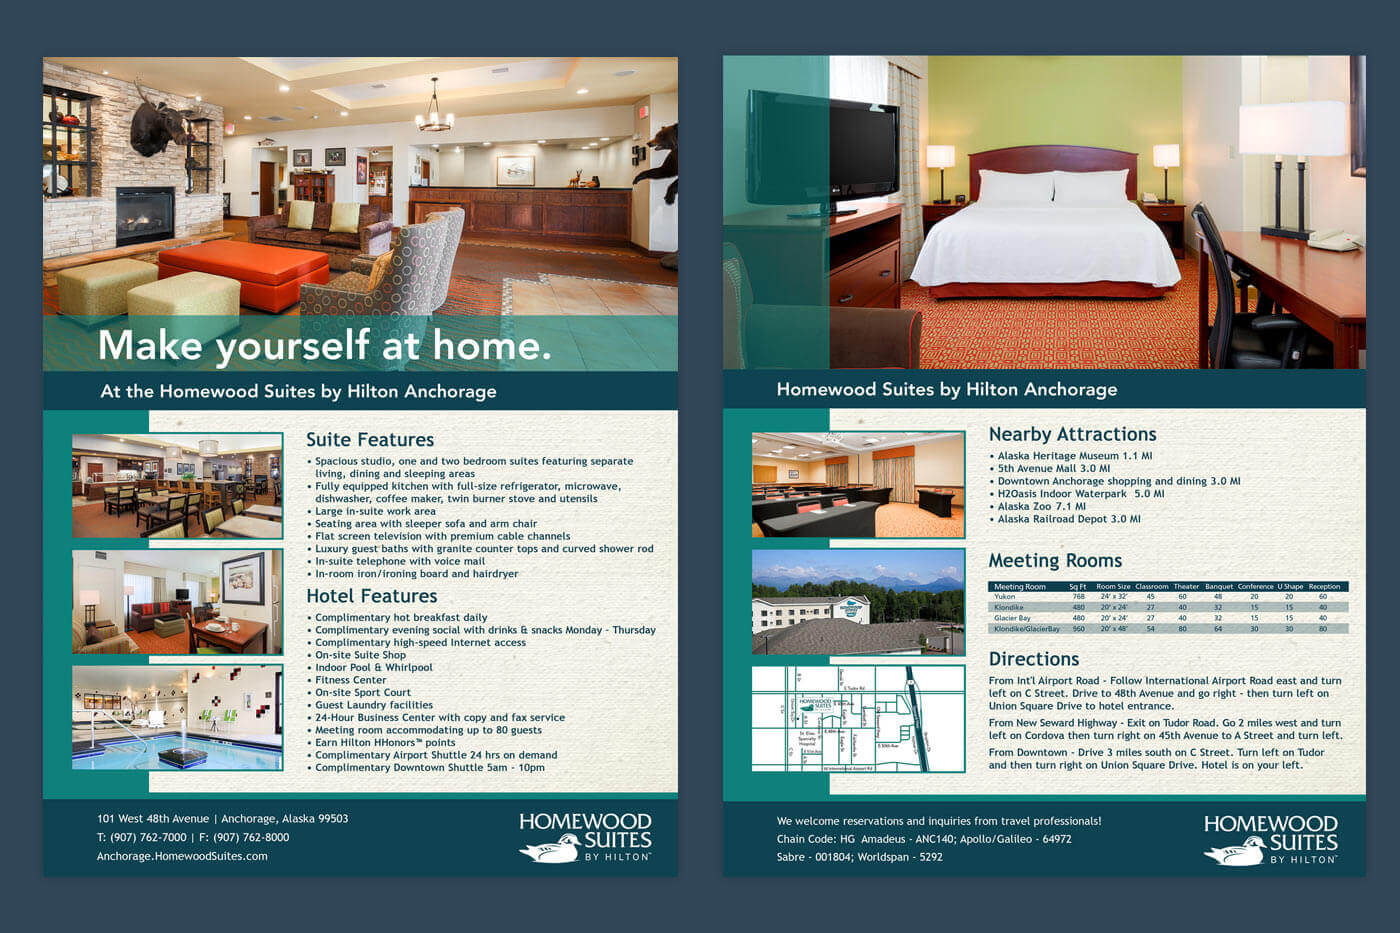 Print Collateral Advertising - Homewood Suites Anchorage Brochure